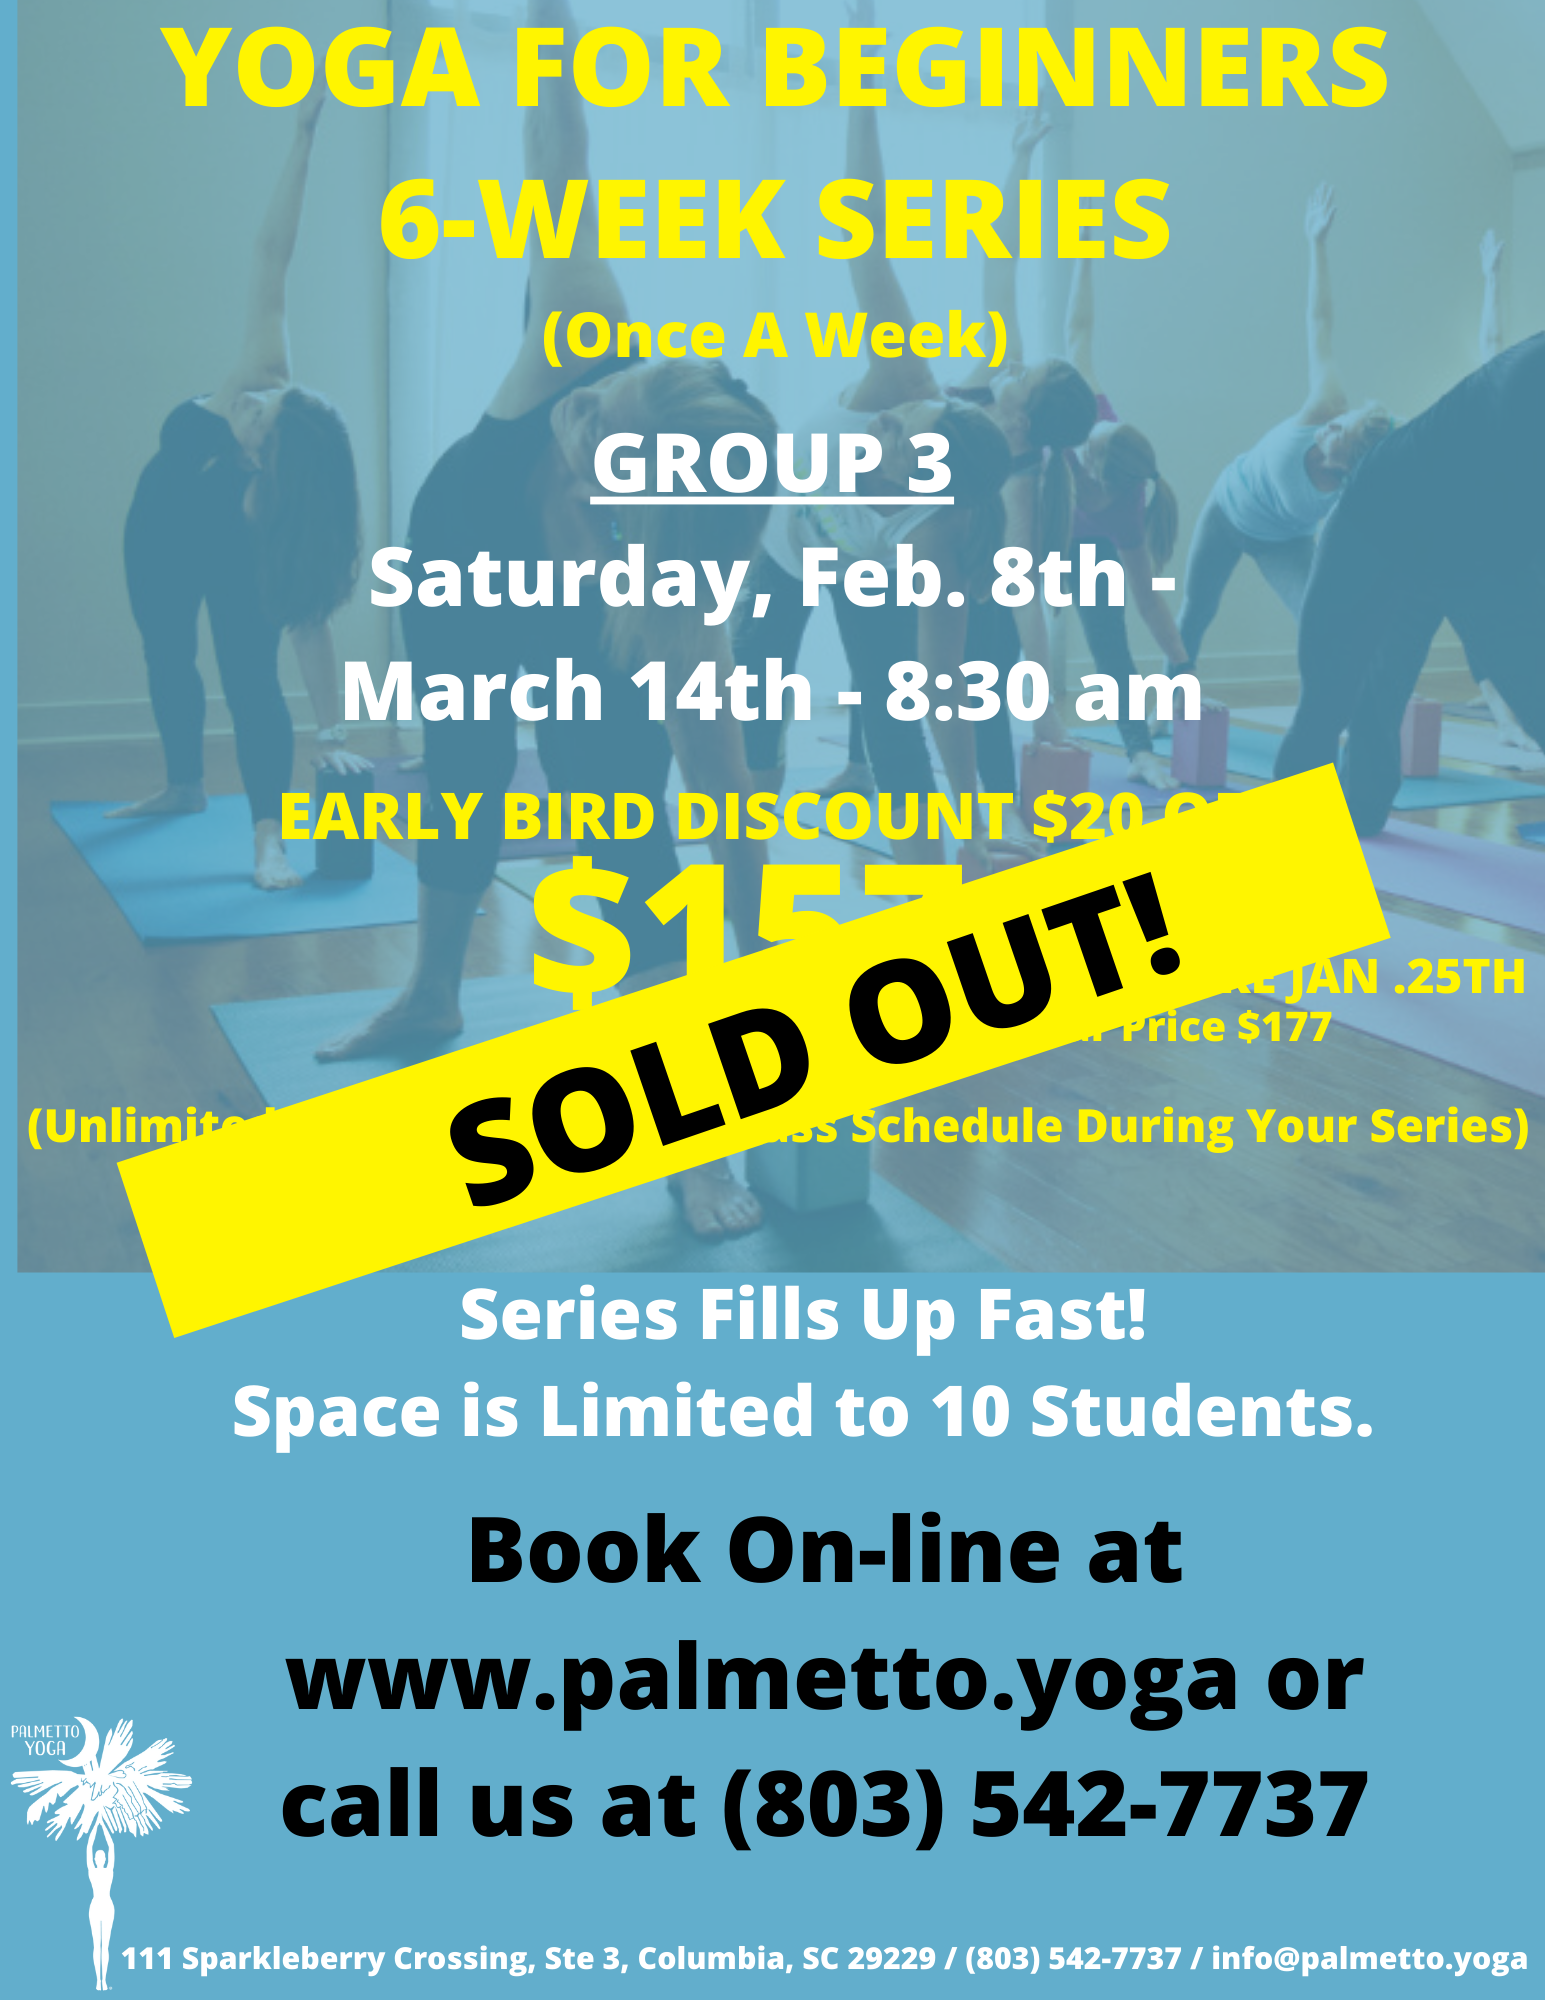 Group 3- YOGA FOR BEGINNERS 6-WEEK SERIE